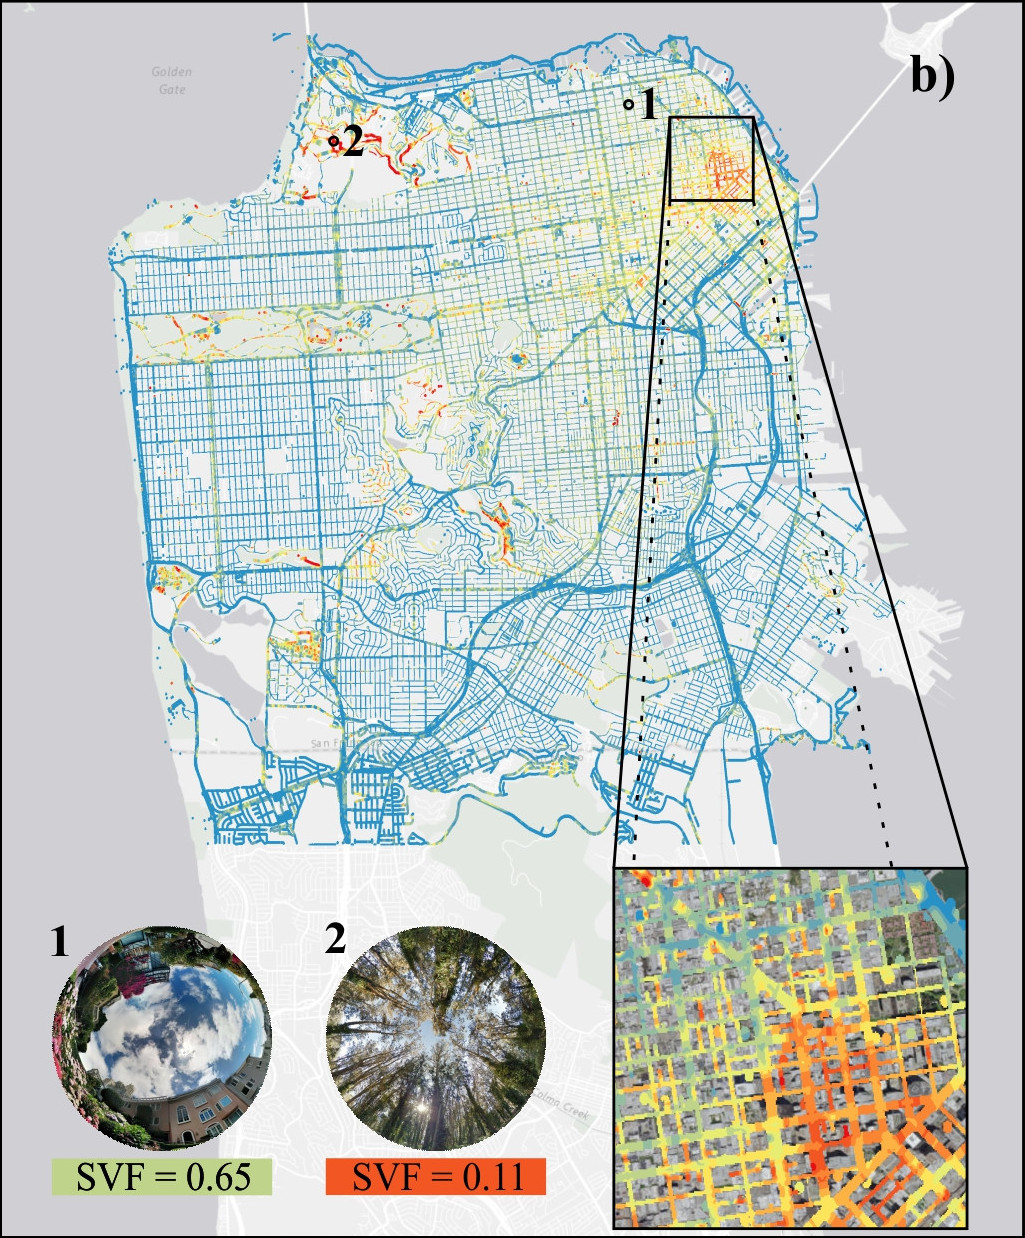 Sky View Factor Footprints for Urban Climate Modeling